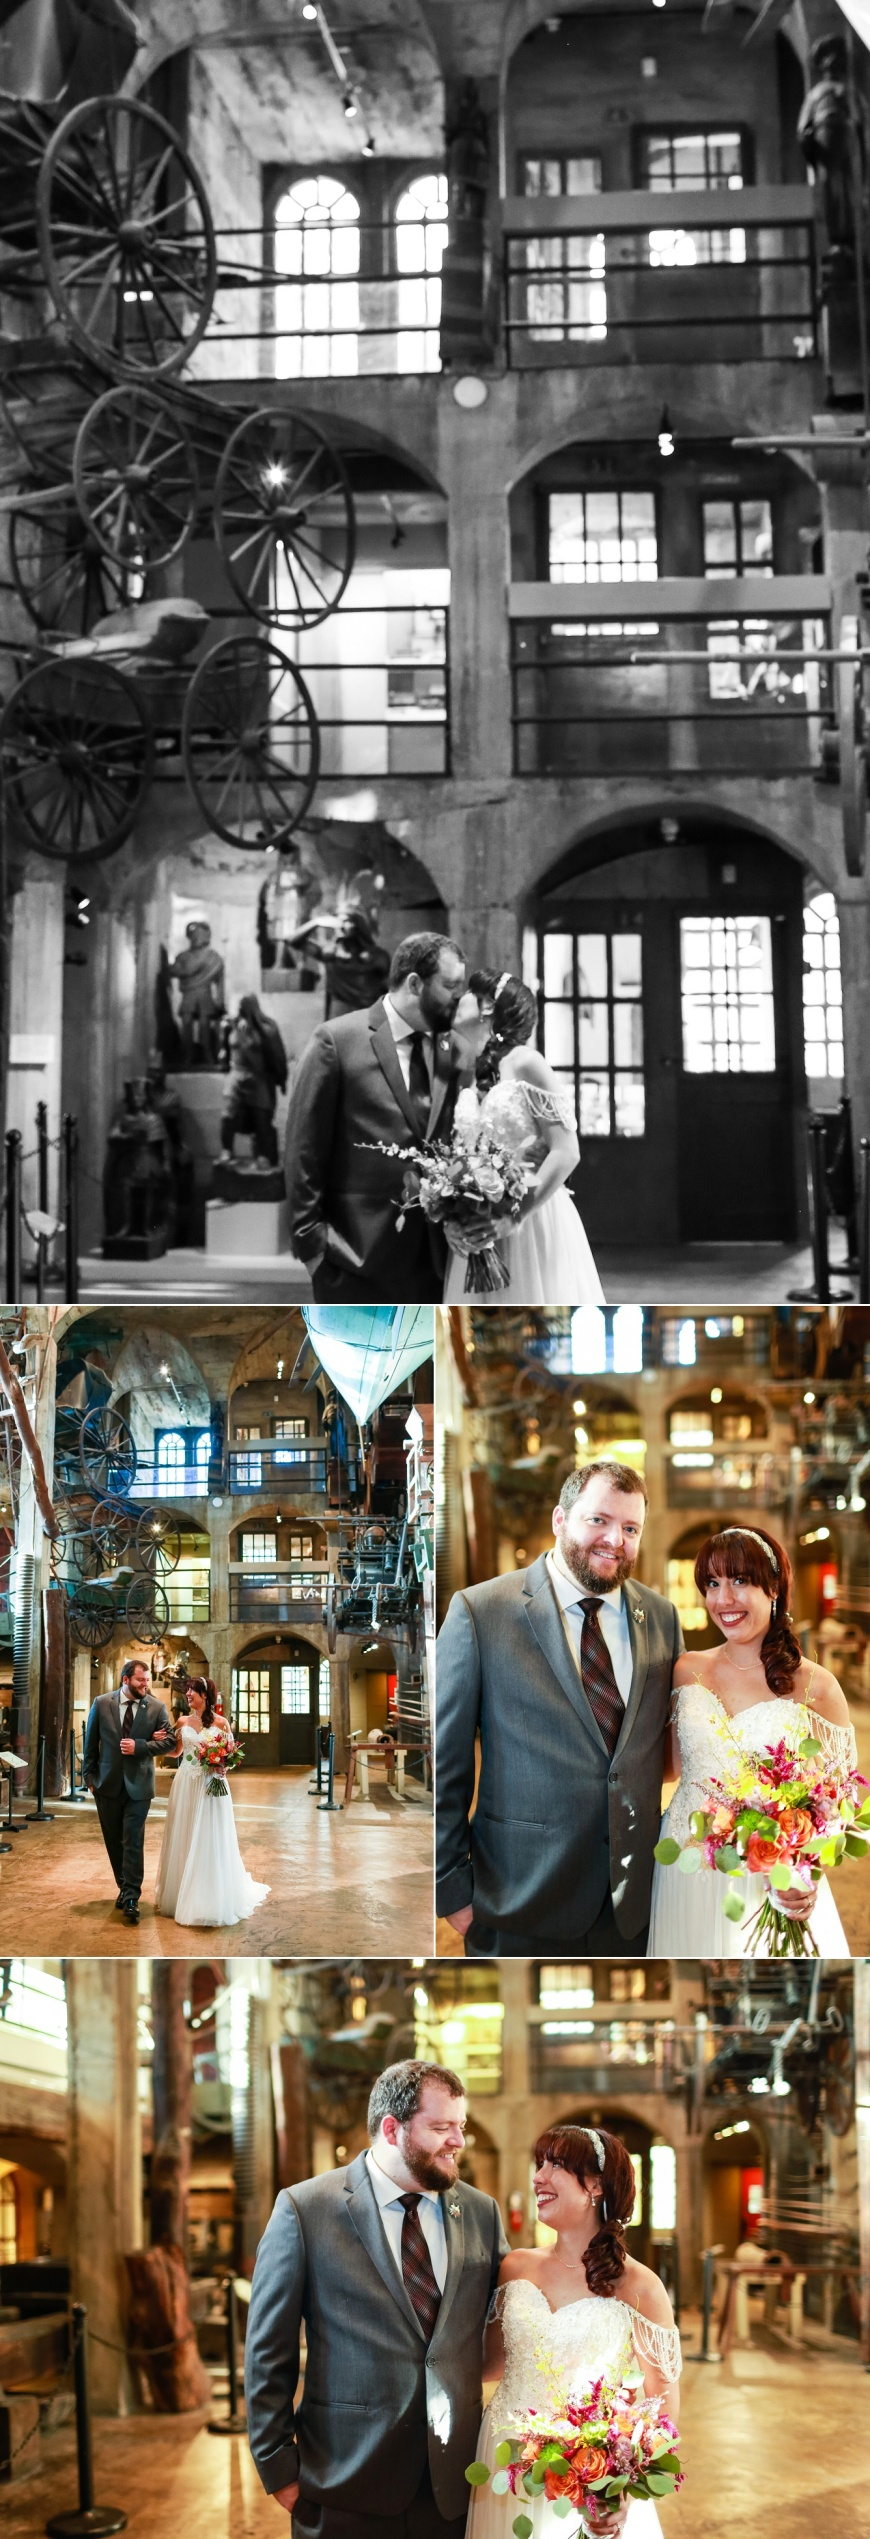 Mercer-Museum-Wedding-Photographer_1059.jpg